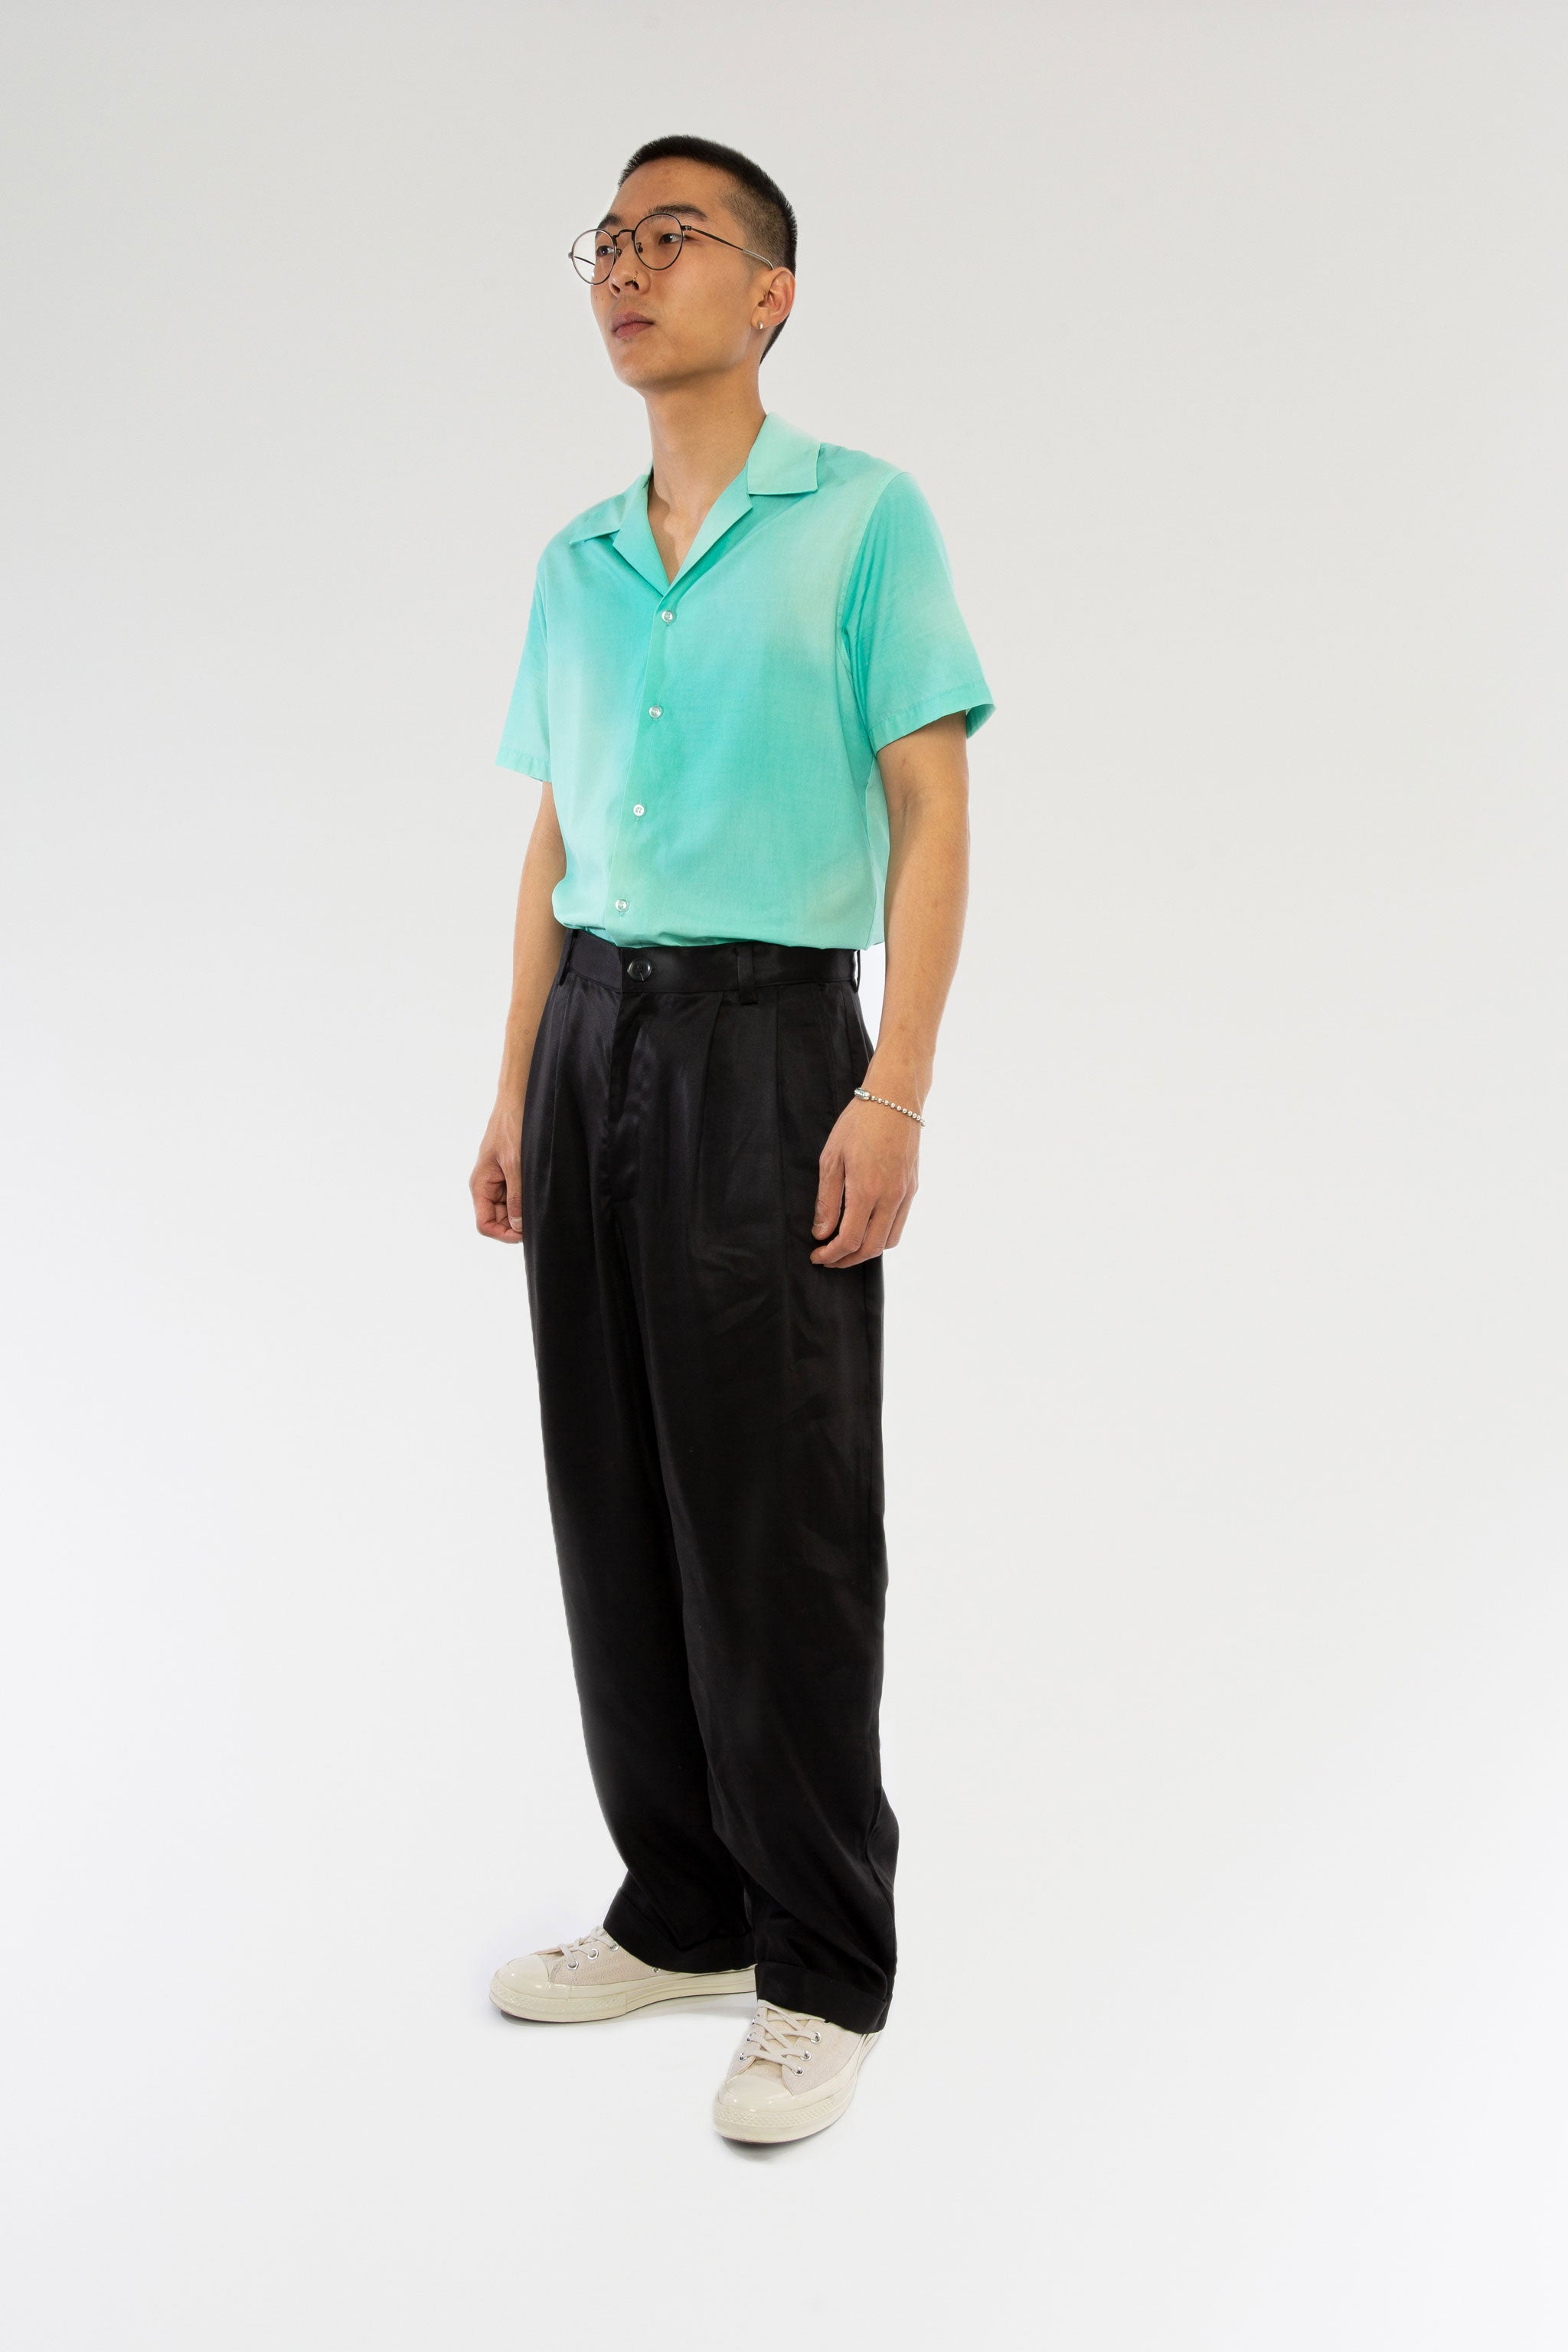 Goodfight SS19 Blazing Sundays Trouser Black